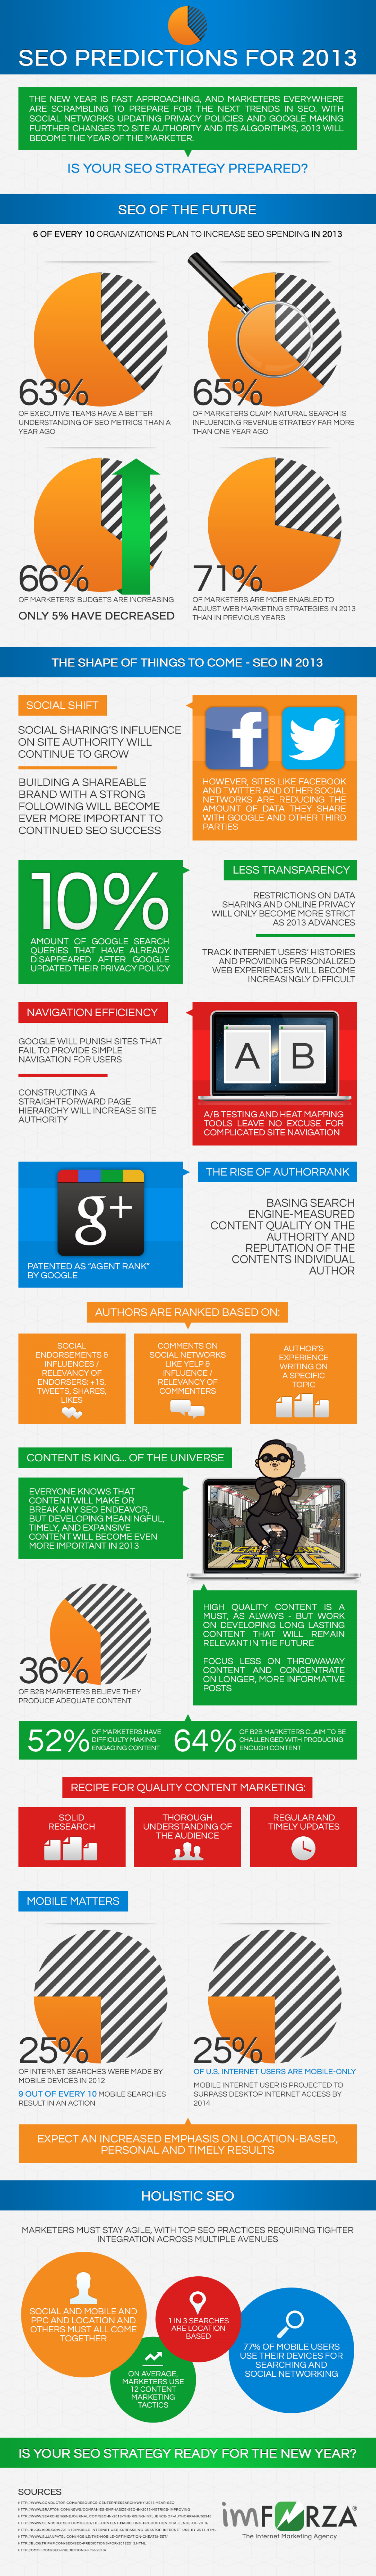 SEO Predictions for 2013 Infographic